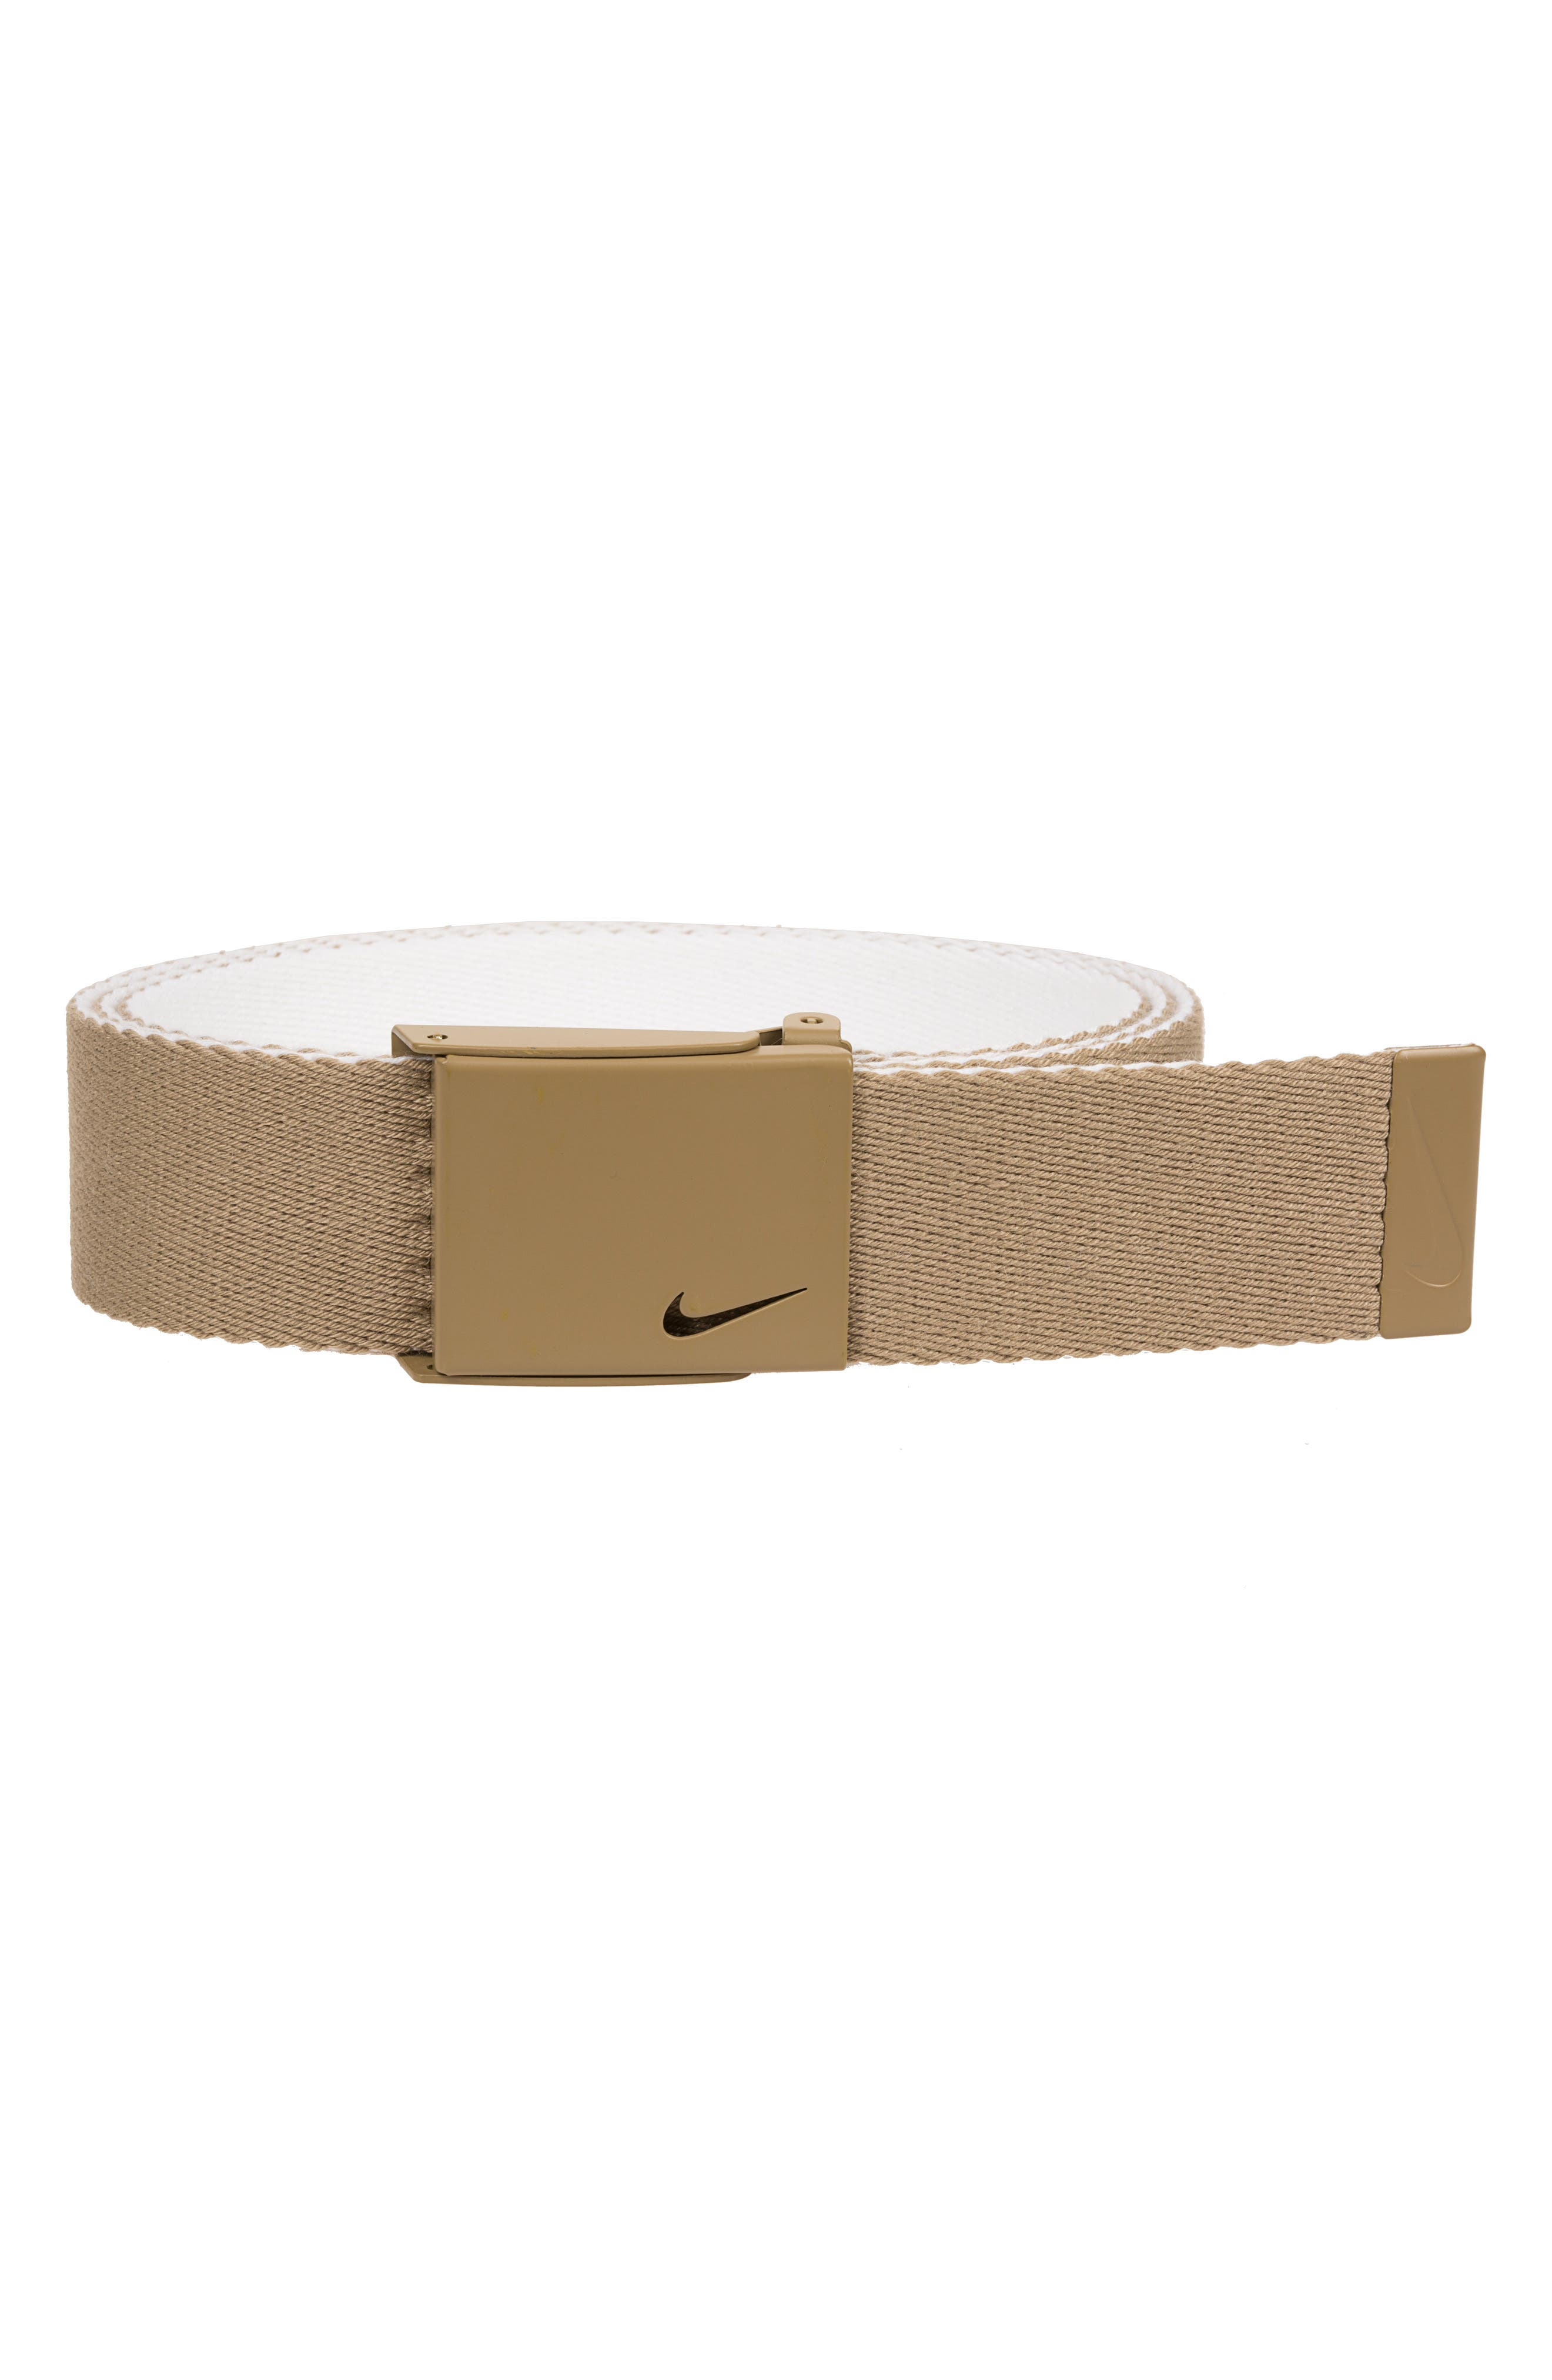 Essentials Reversible Webbed Belt,                             Main thumbnail 1, color,                             KHAKI/ WHITE